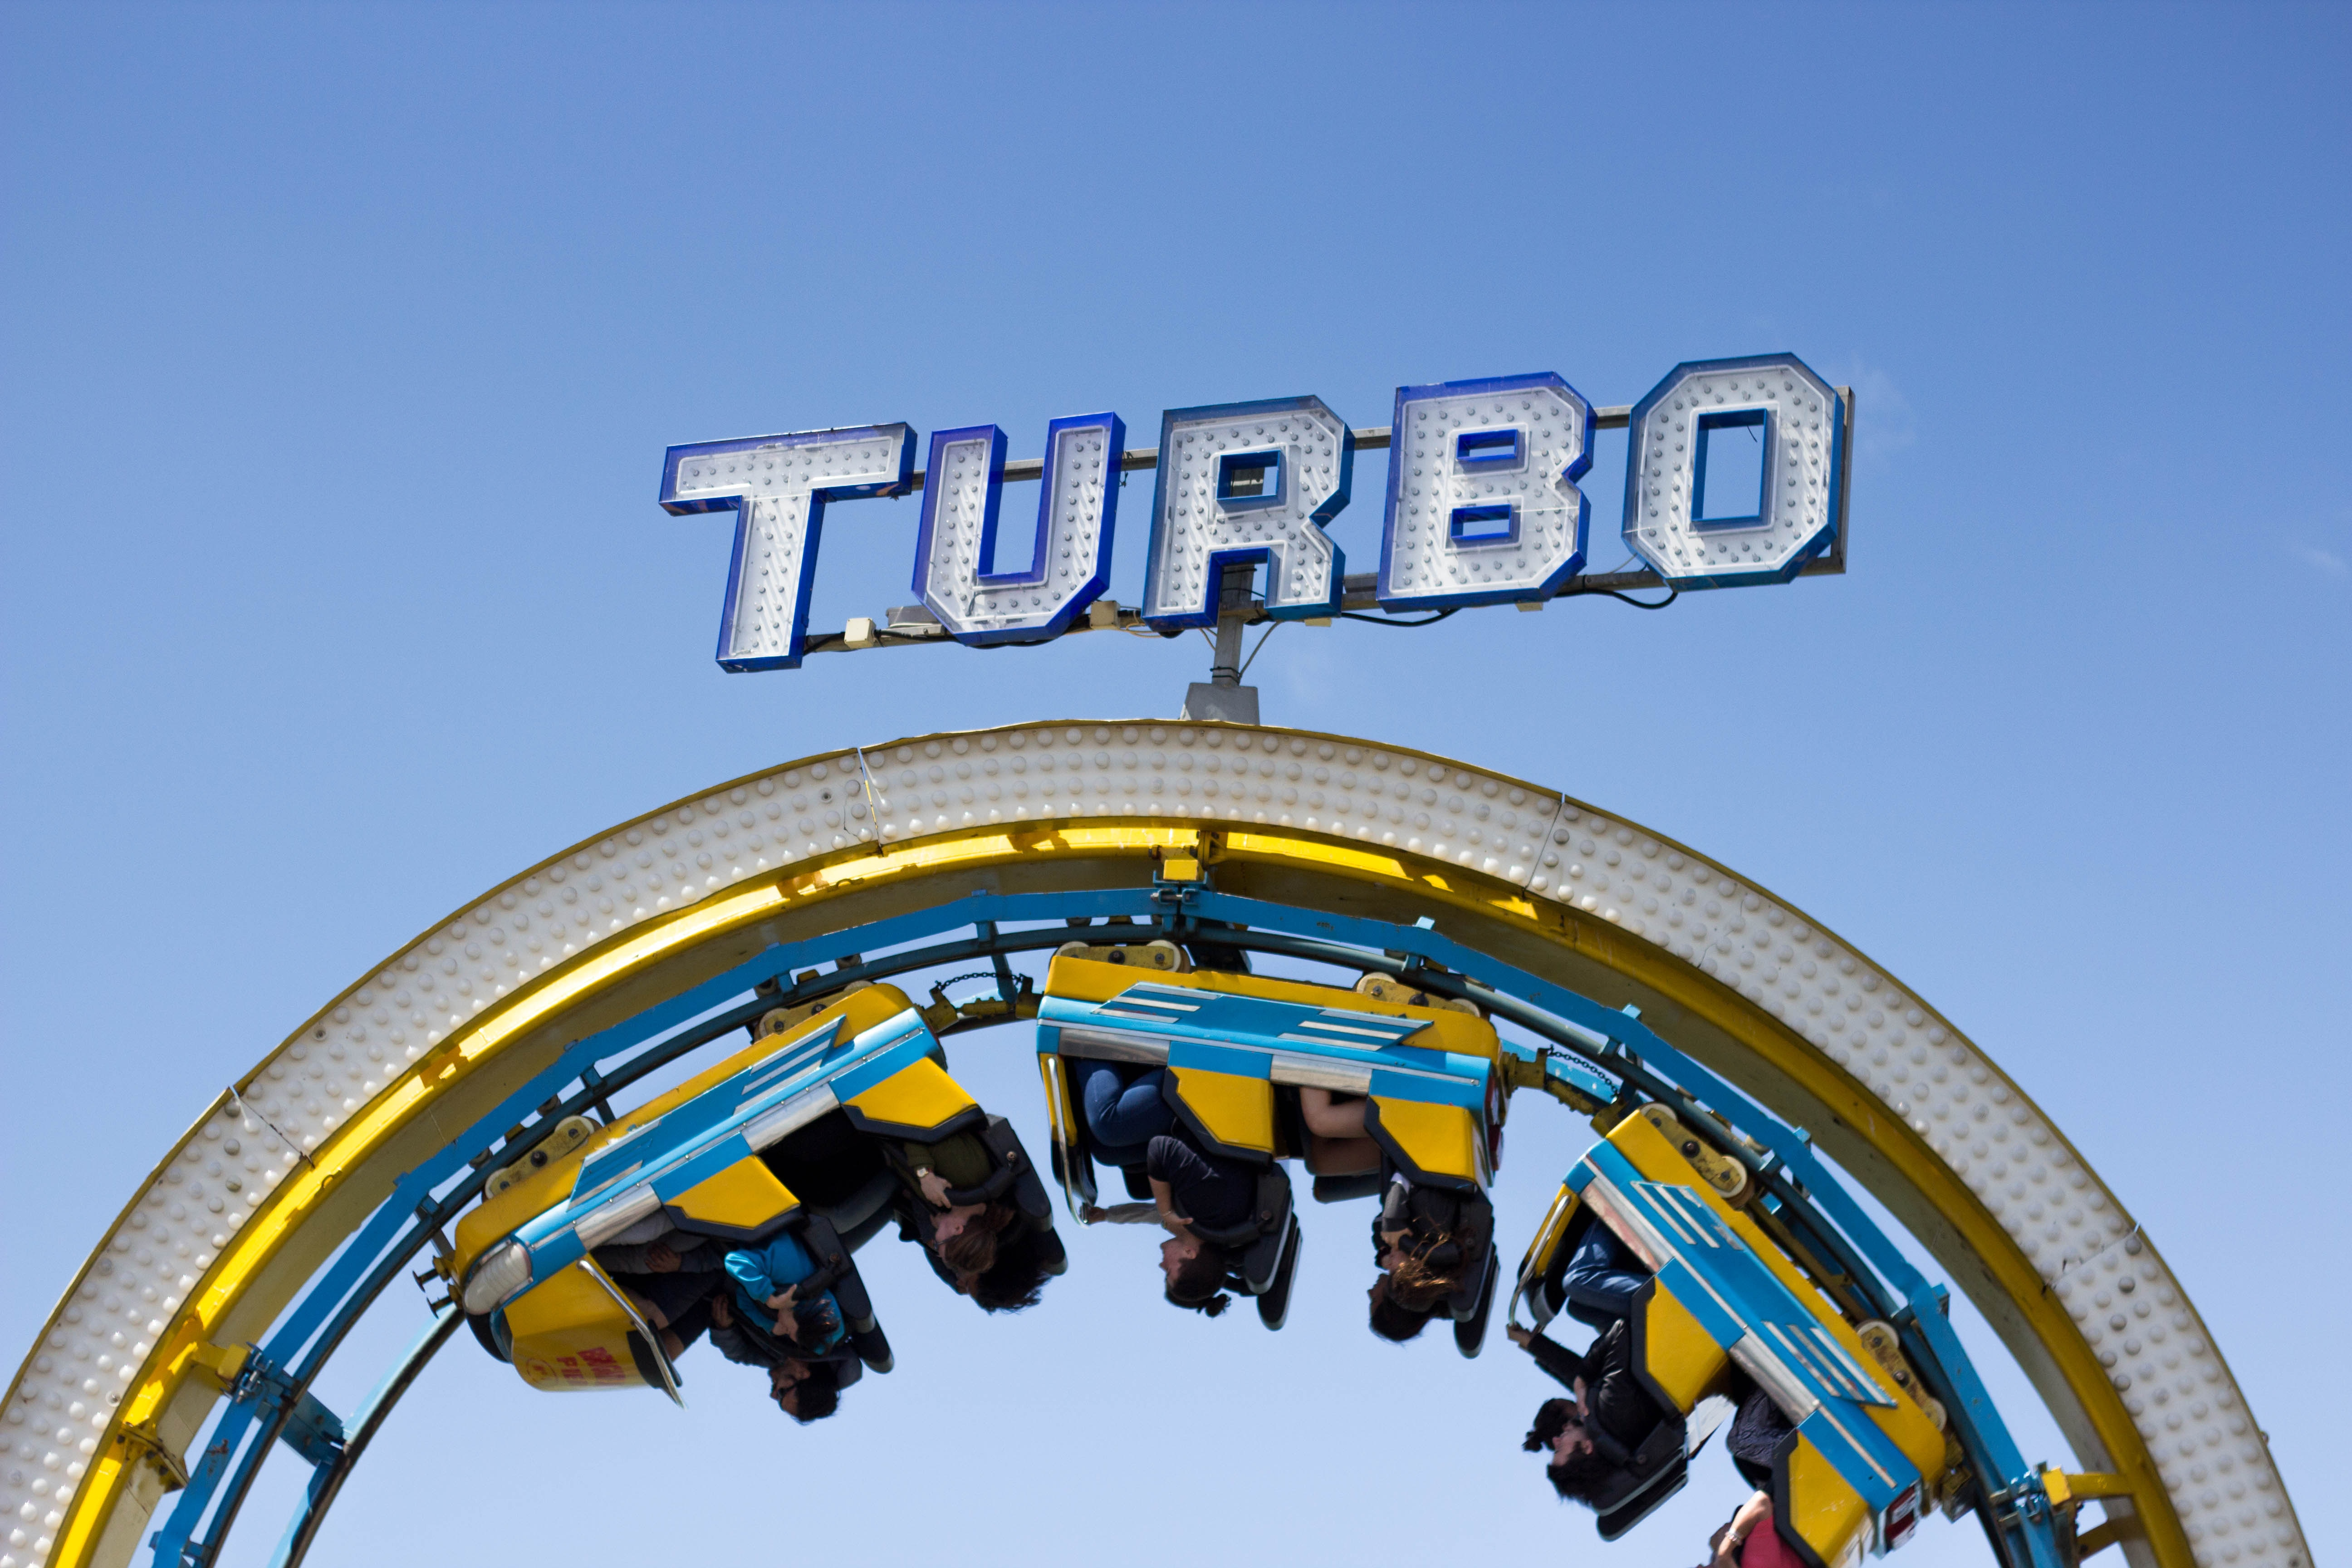 A fun roller coaster named Turbo.